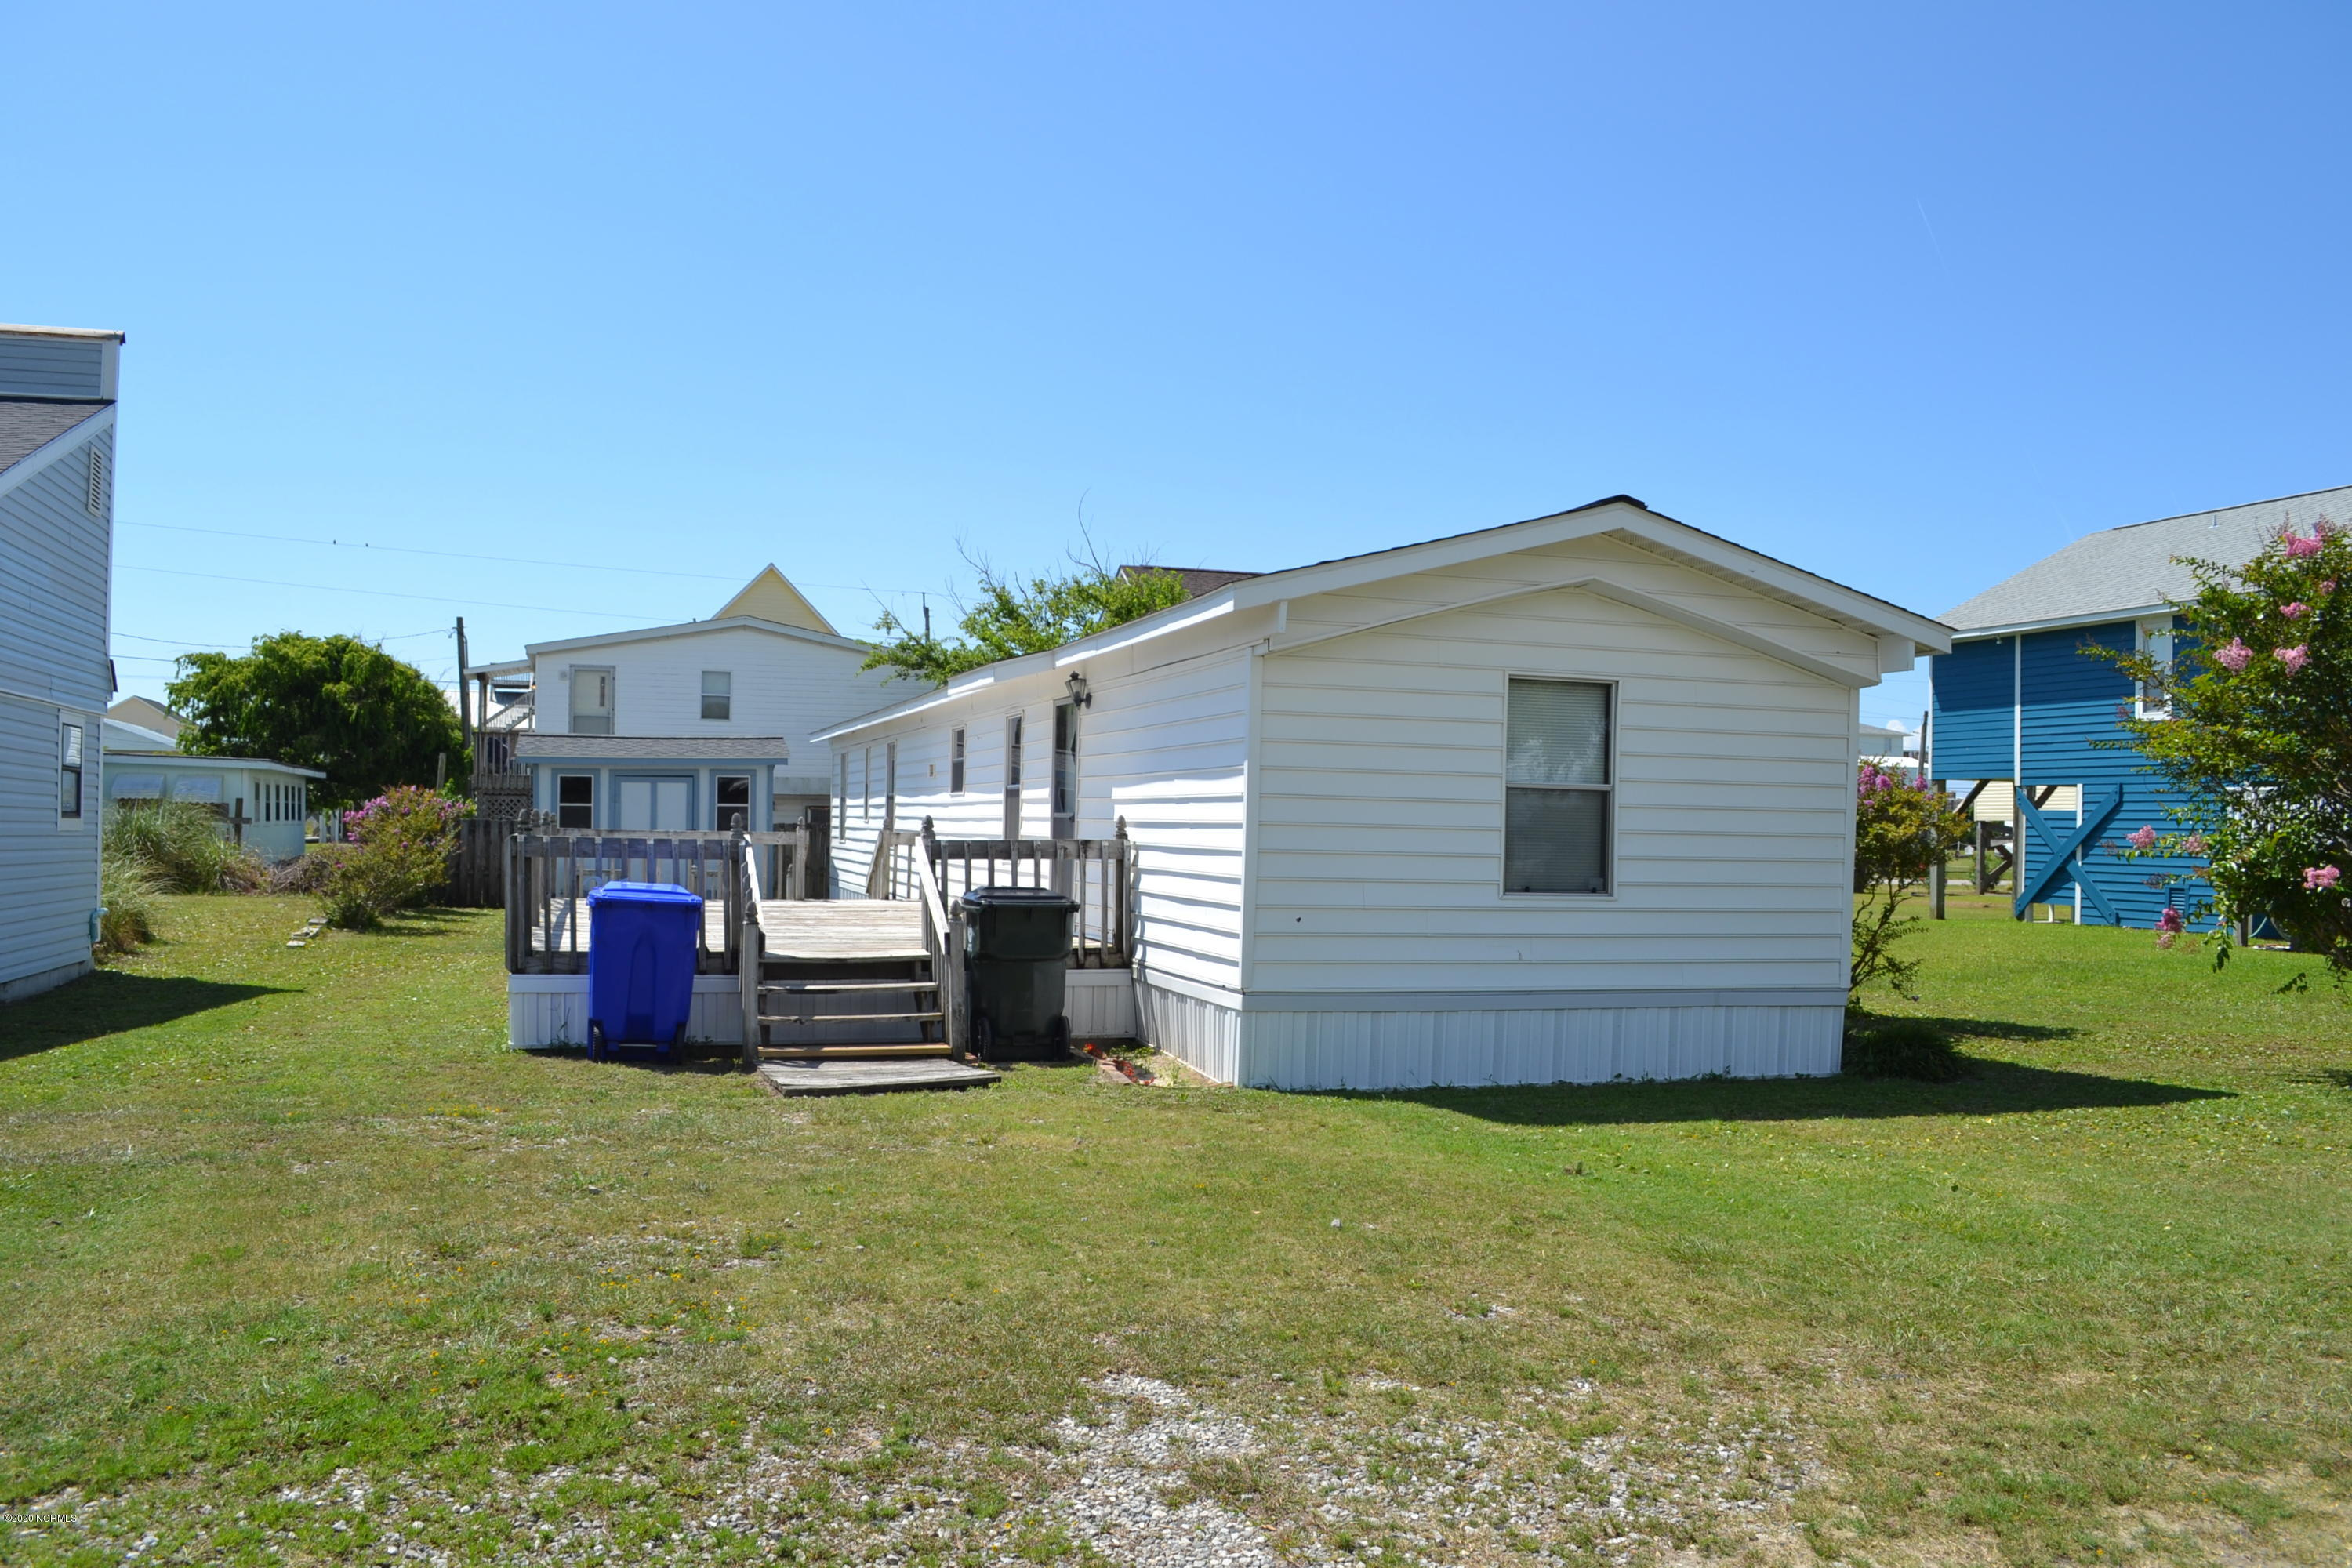 216 Makepeace Street, North Topsail Beach, North Carolina 28460, 3 Bedrooms Bedrooms, ,2 BathroomsBathrooms,Residential,For Sale,Makepeace,100228012